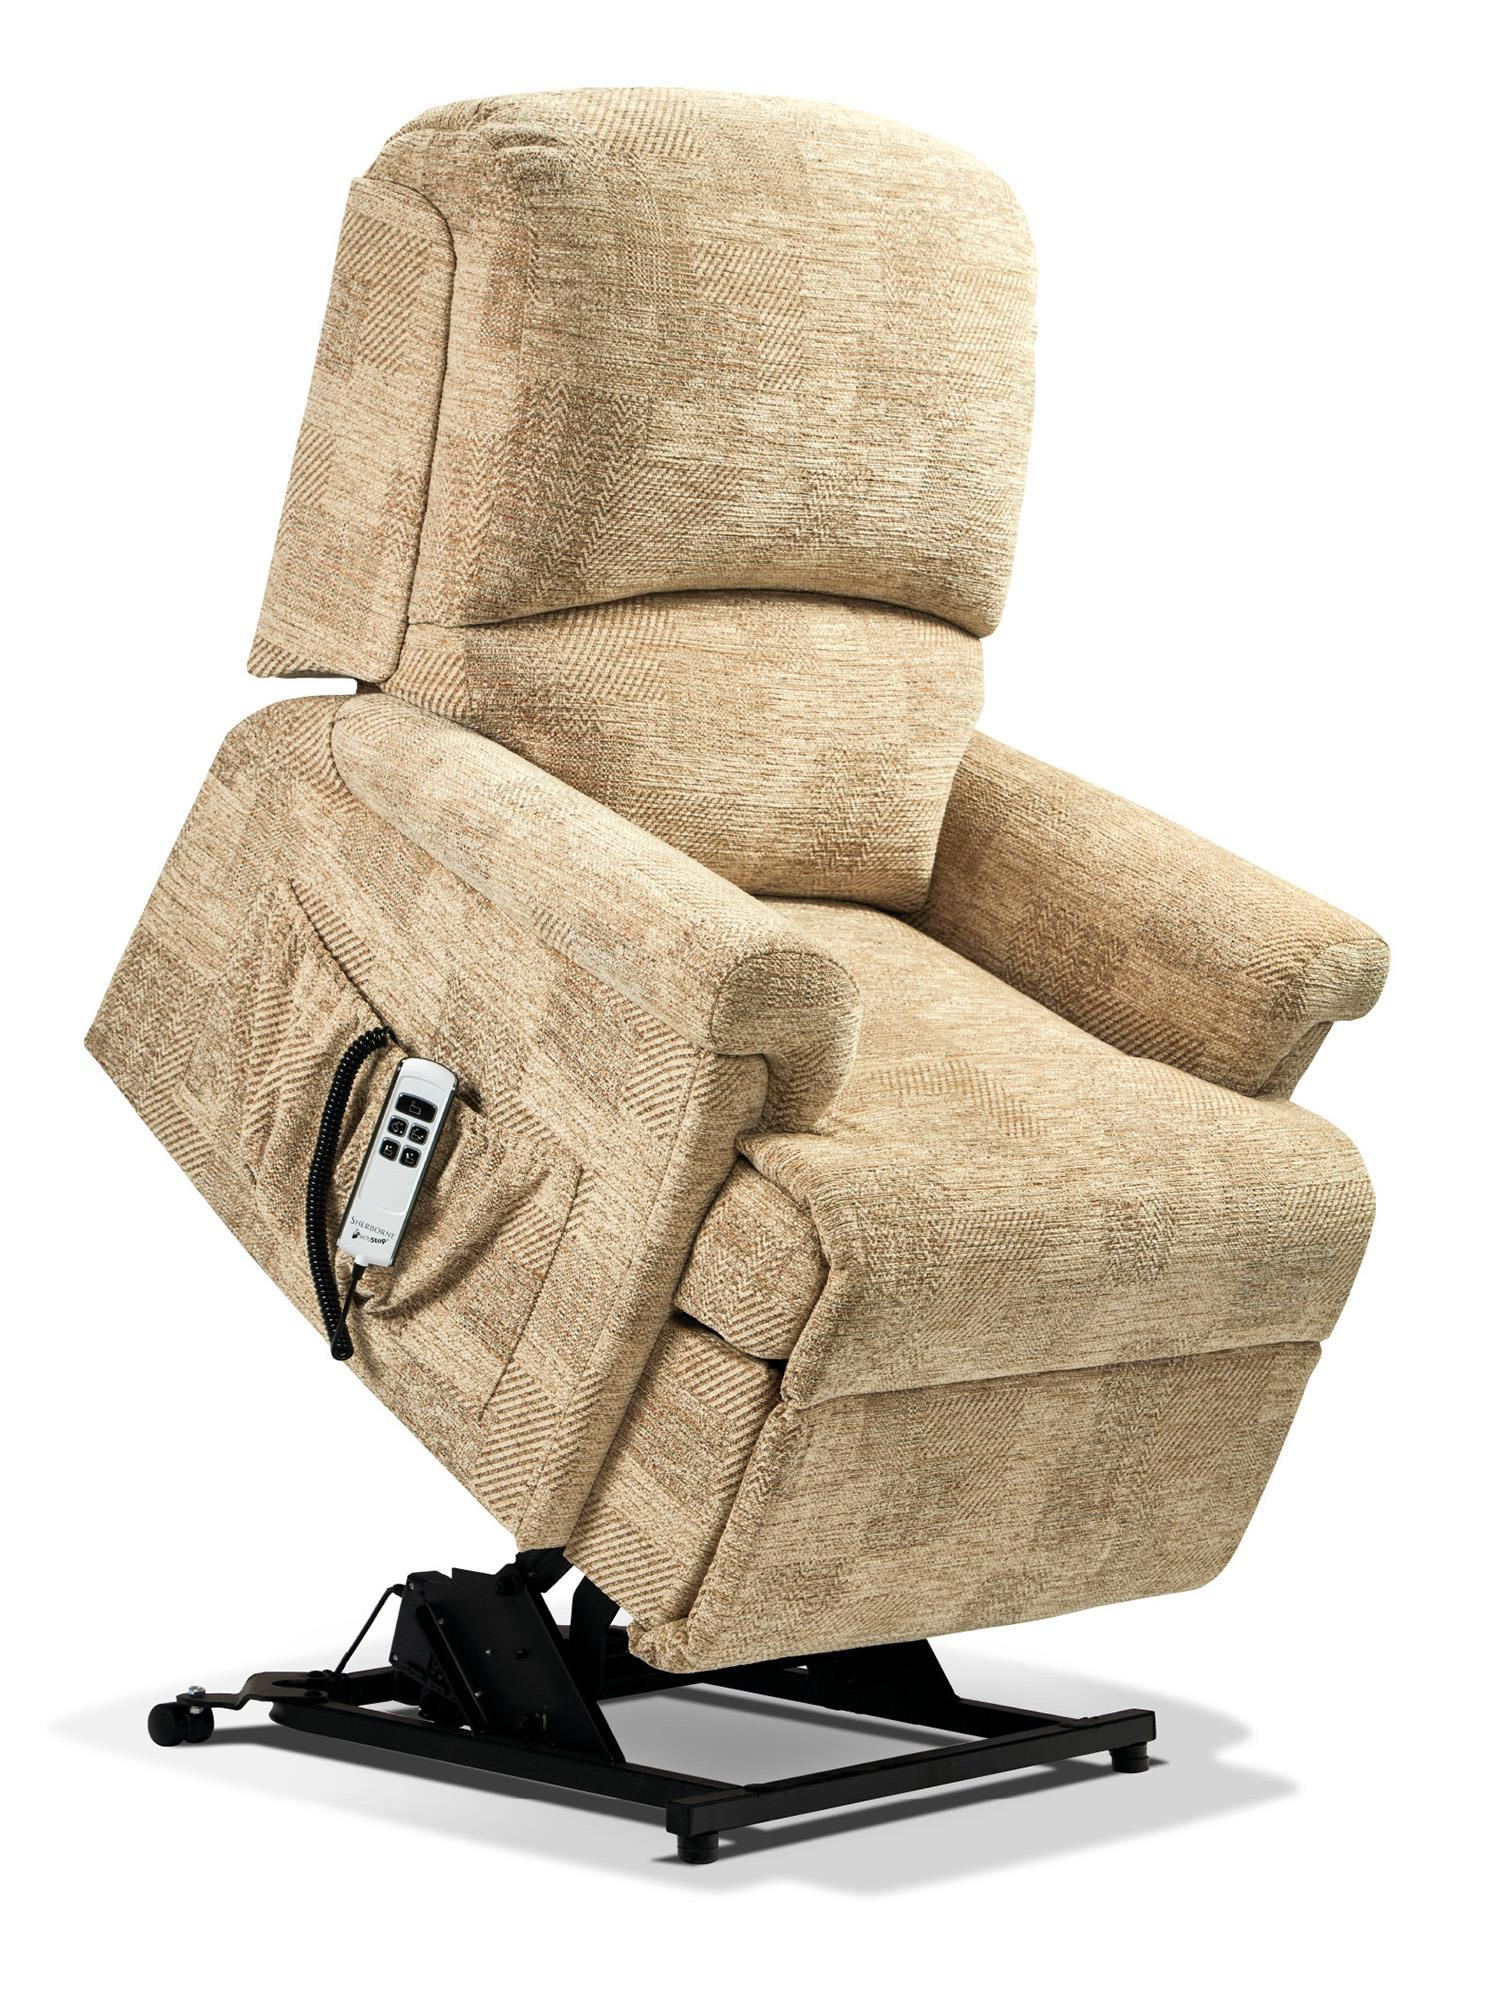 Nevada Riser Recliner  Chair - by Sherborne